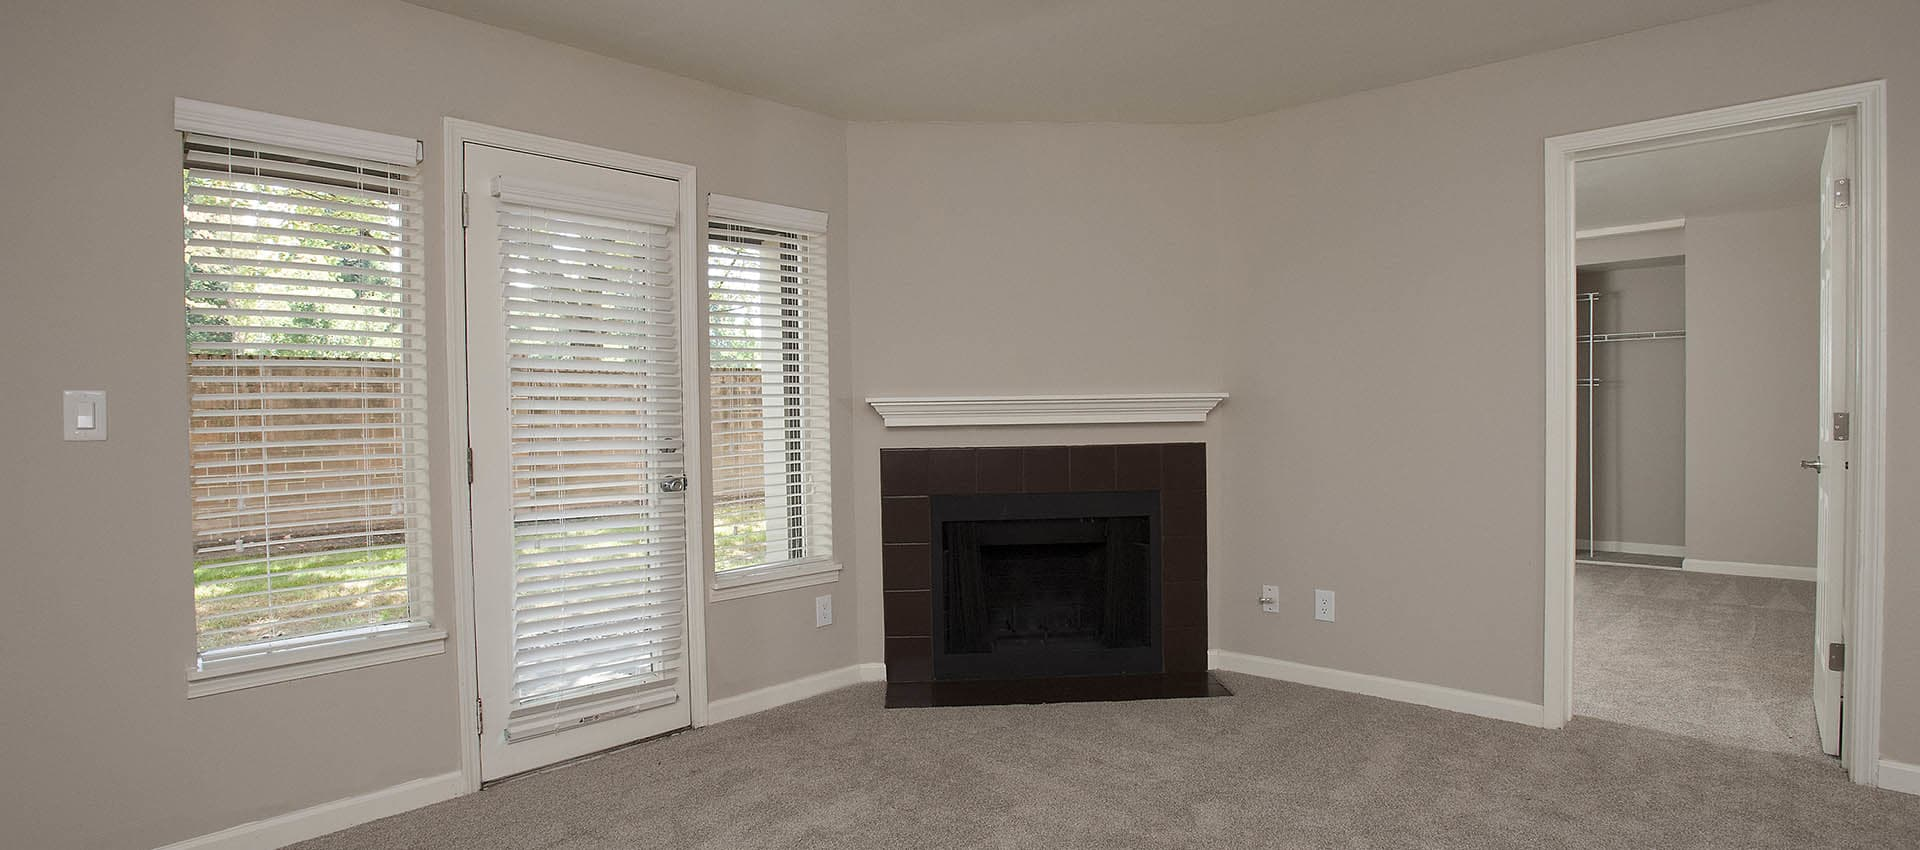 Fireplace In Living Room With Exterior Door at Waterhouse Place in Beaverton, OR